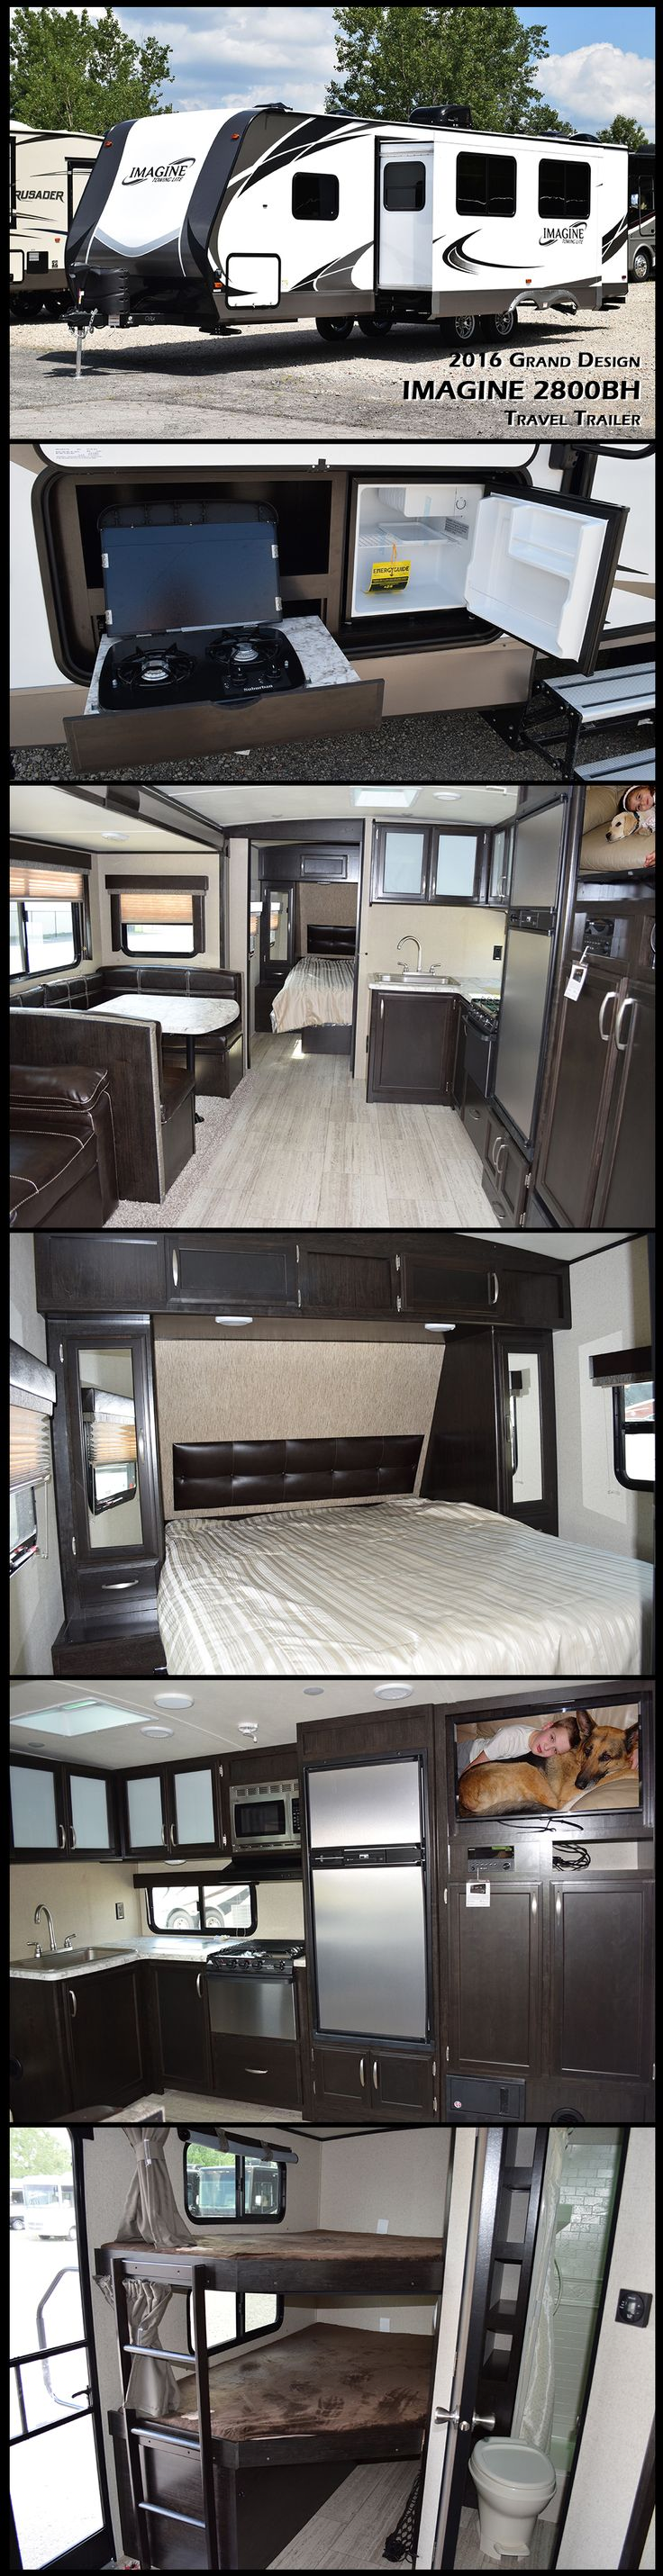 With floorplans starting well under imagine travel trailers hit the towing sweet spot of today s medium duty trucks and suv s